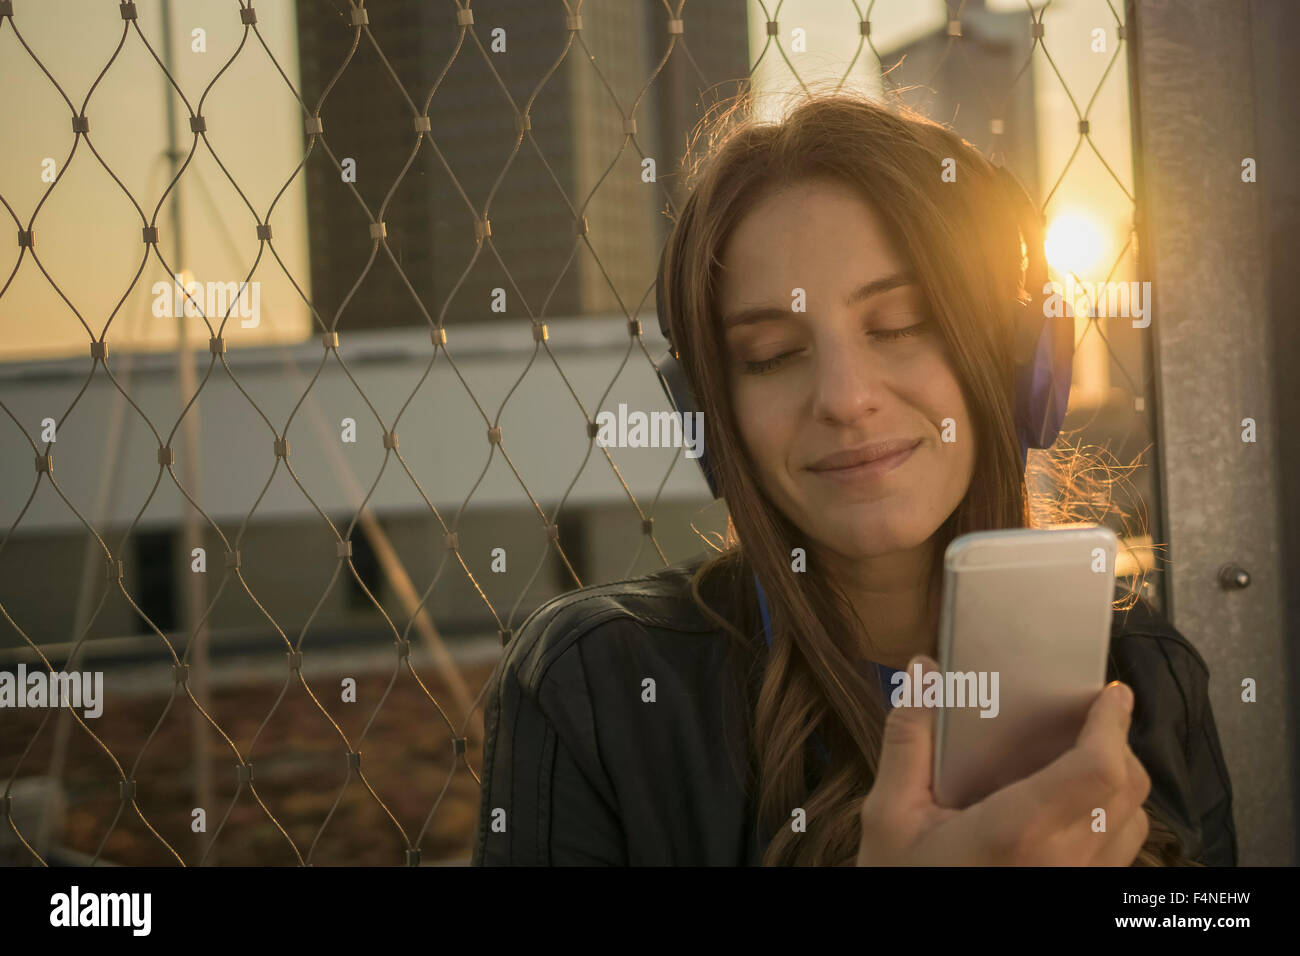 Portrait of smiling young woman with closed eyes hearing music with headphones at backlight - Stock Image